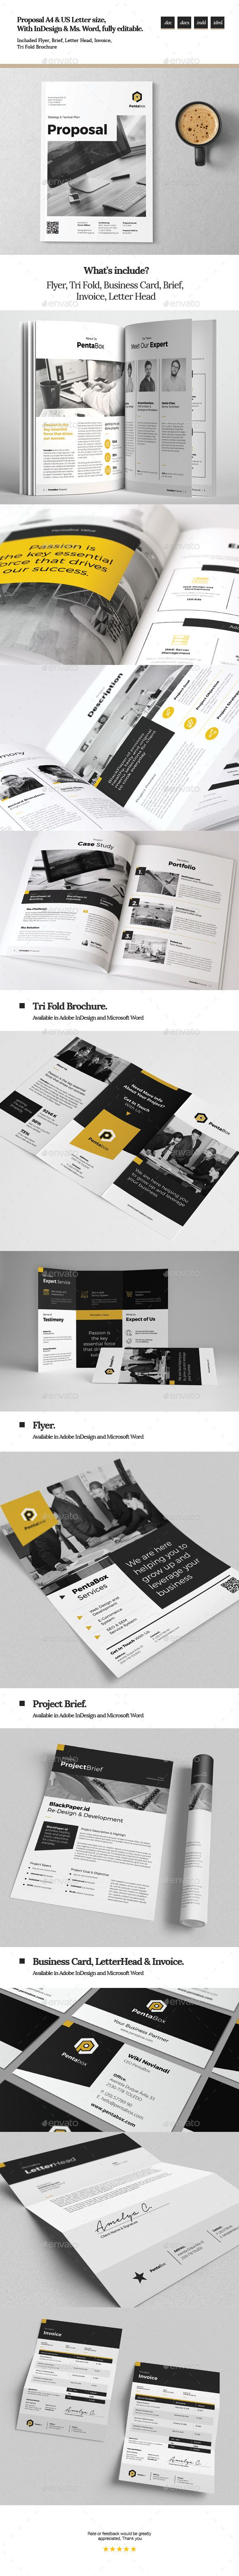 Proposal Template InDesign INDD, MS Word. Download here: https ...